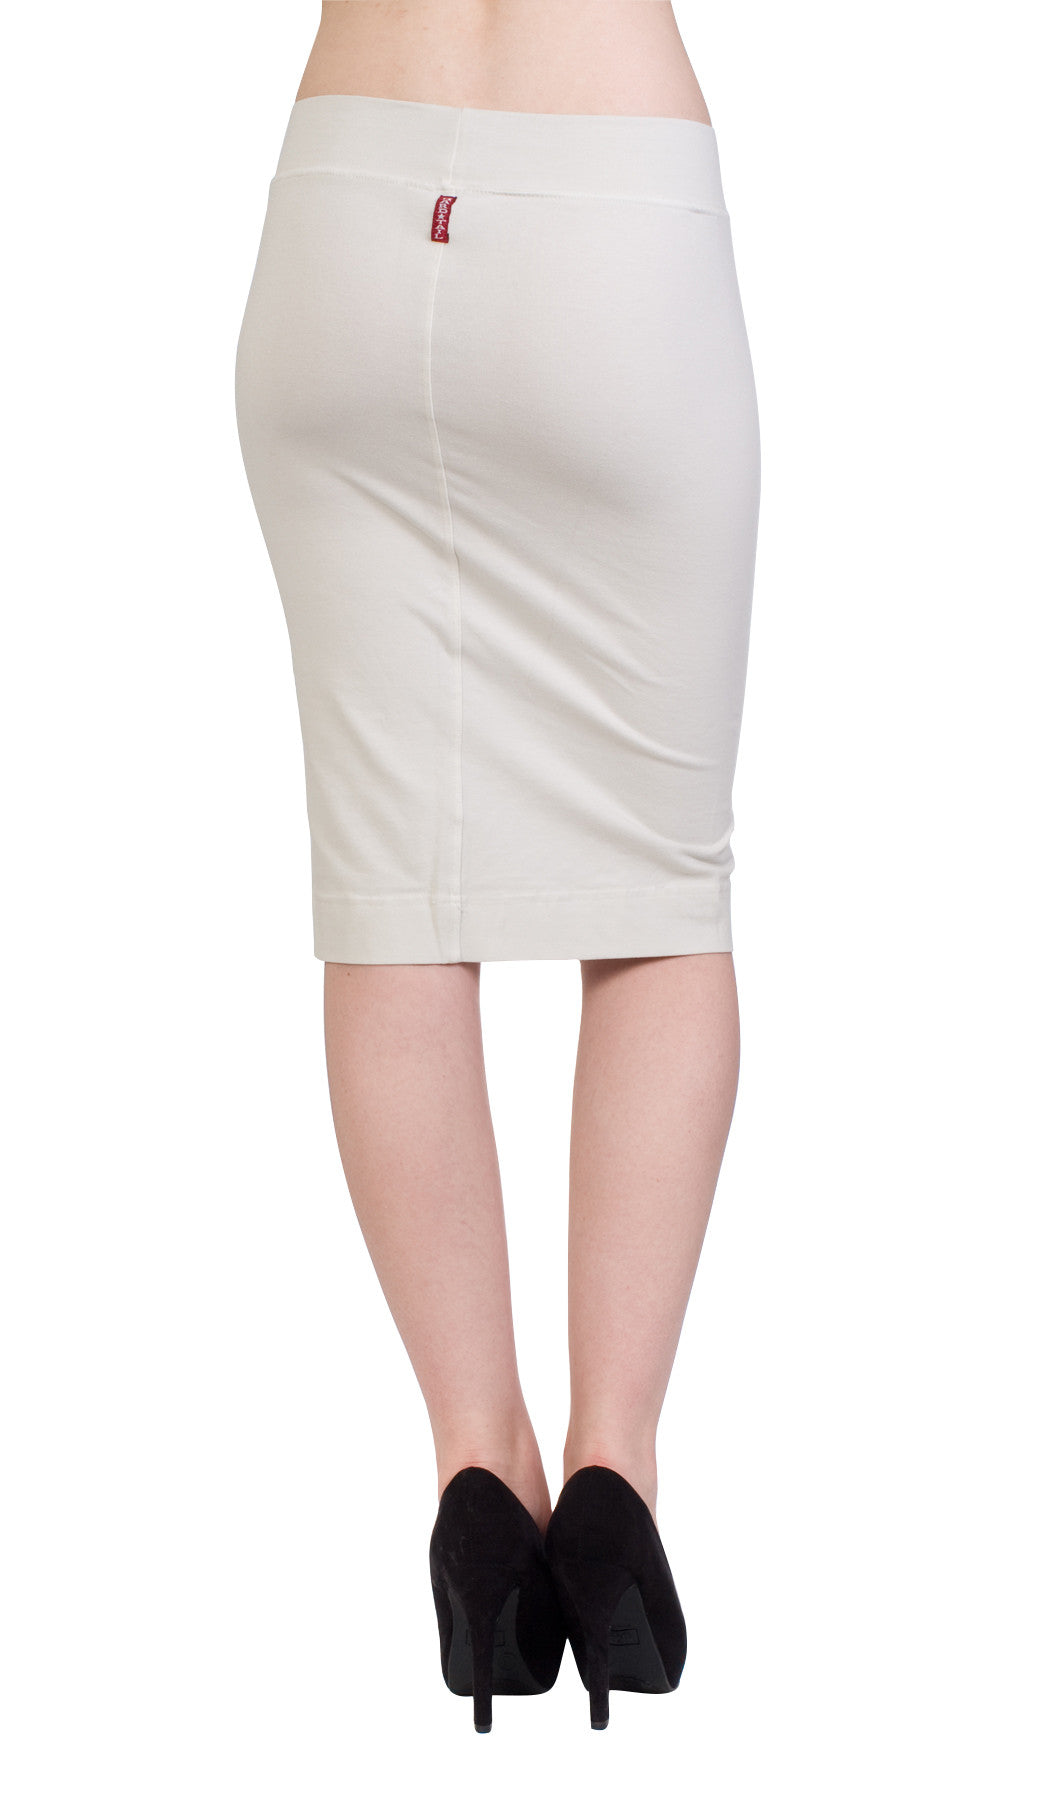 Hard Tail skinny knee pencil skirt - Available in 10 colors